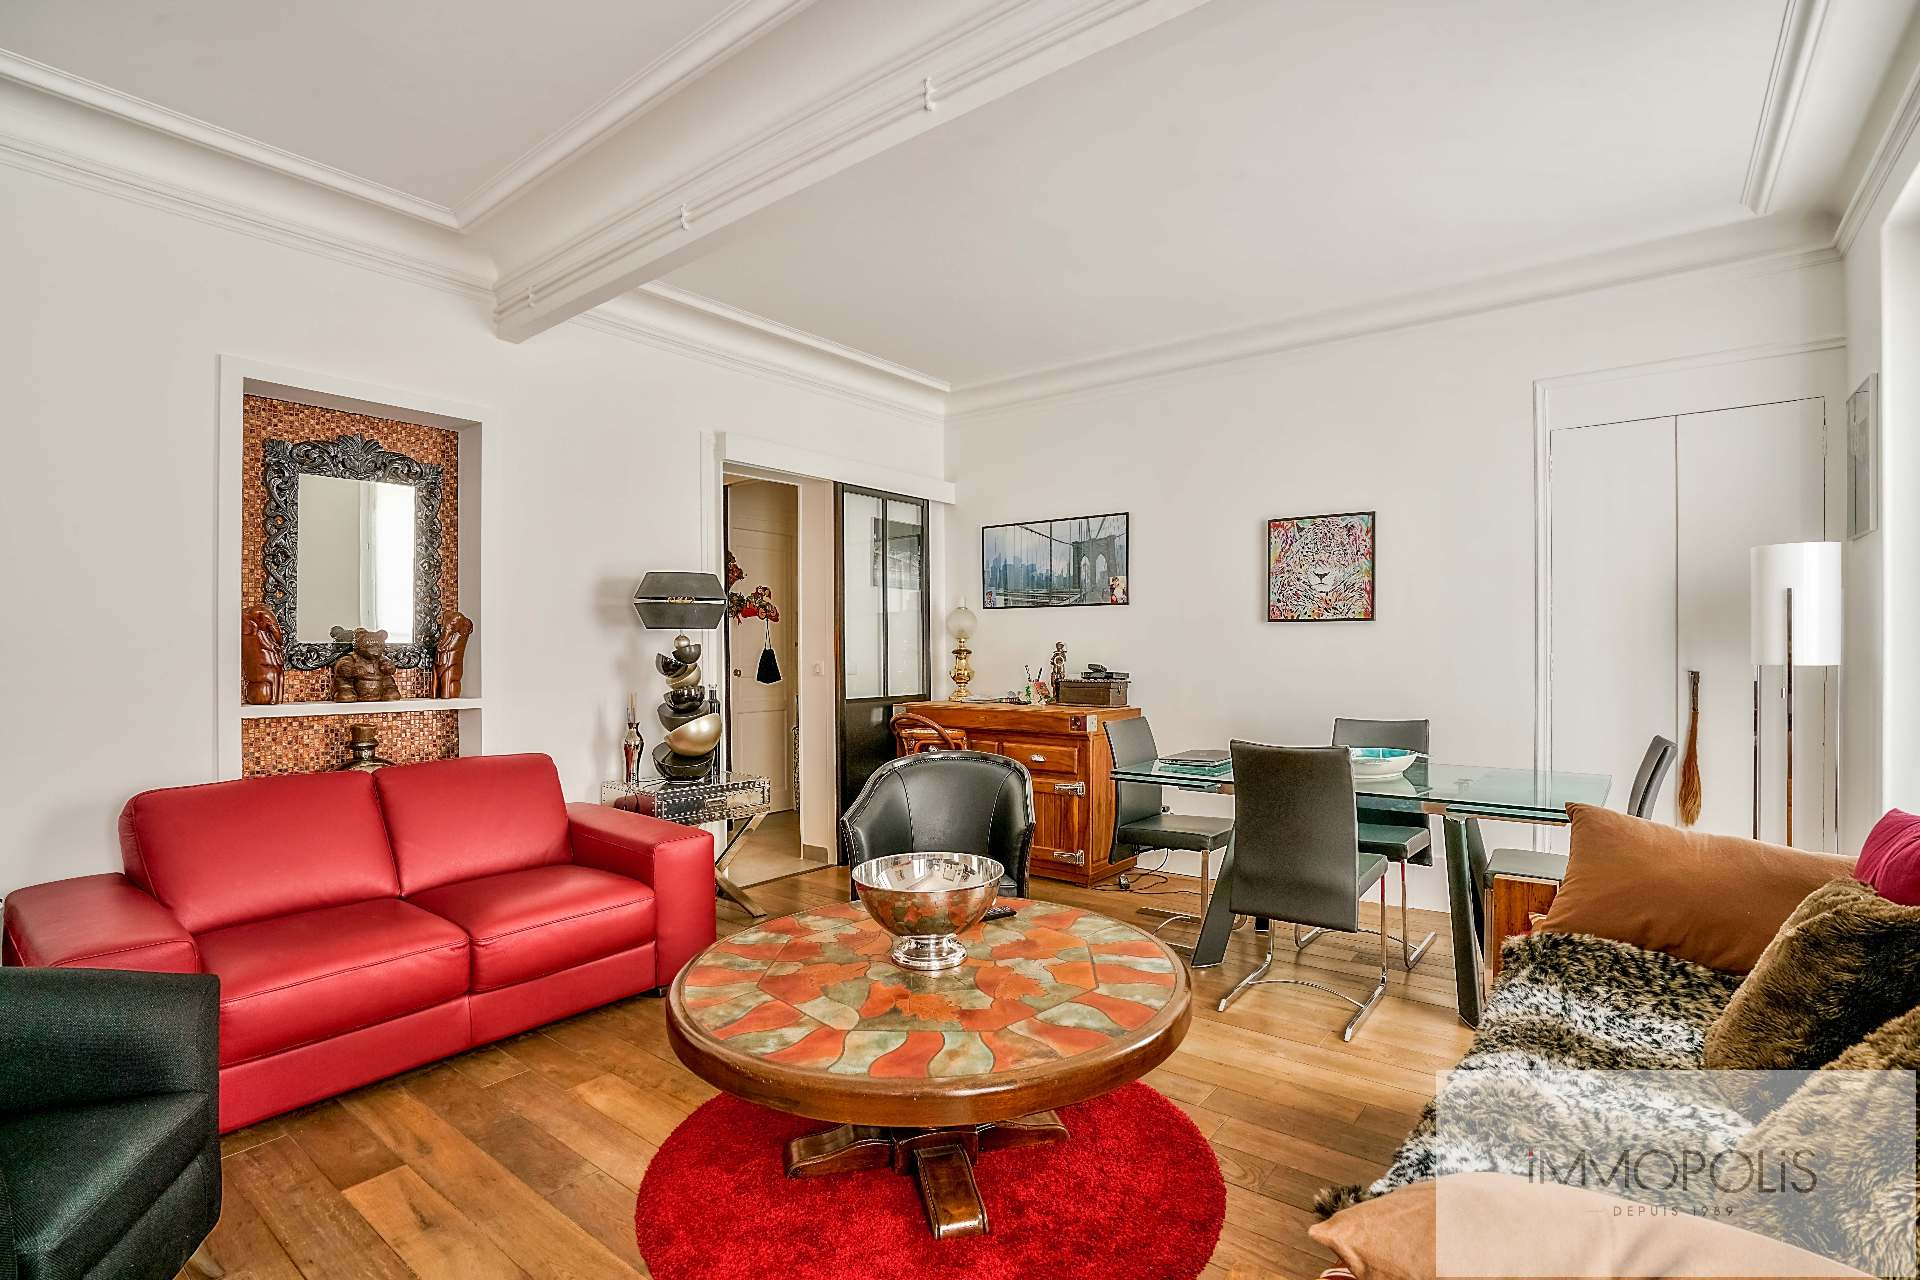 Superb 3 room apartment (currently 1 bedroom) in Montmartre, on the 3rd floor with elevator: great amenities! 9